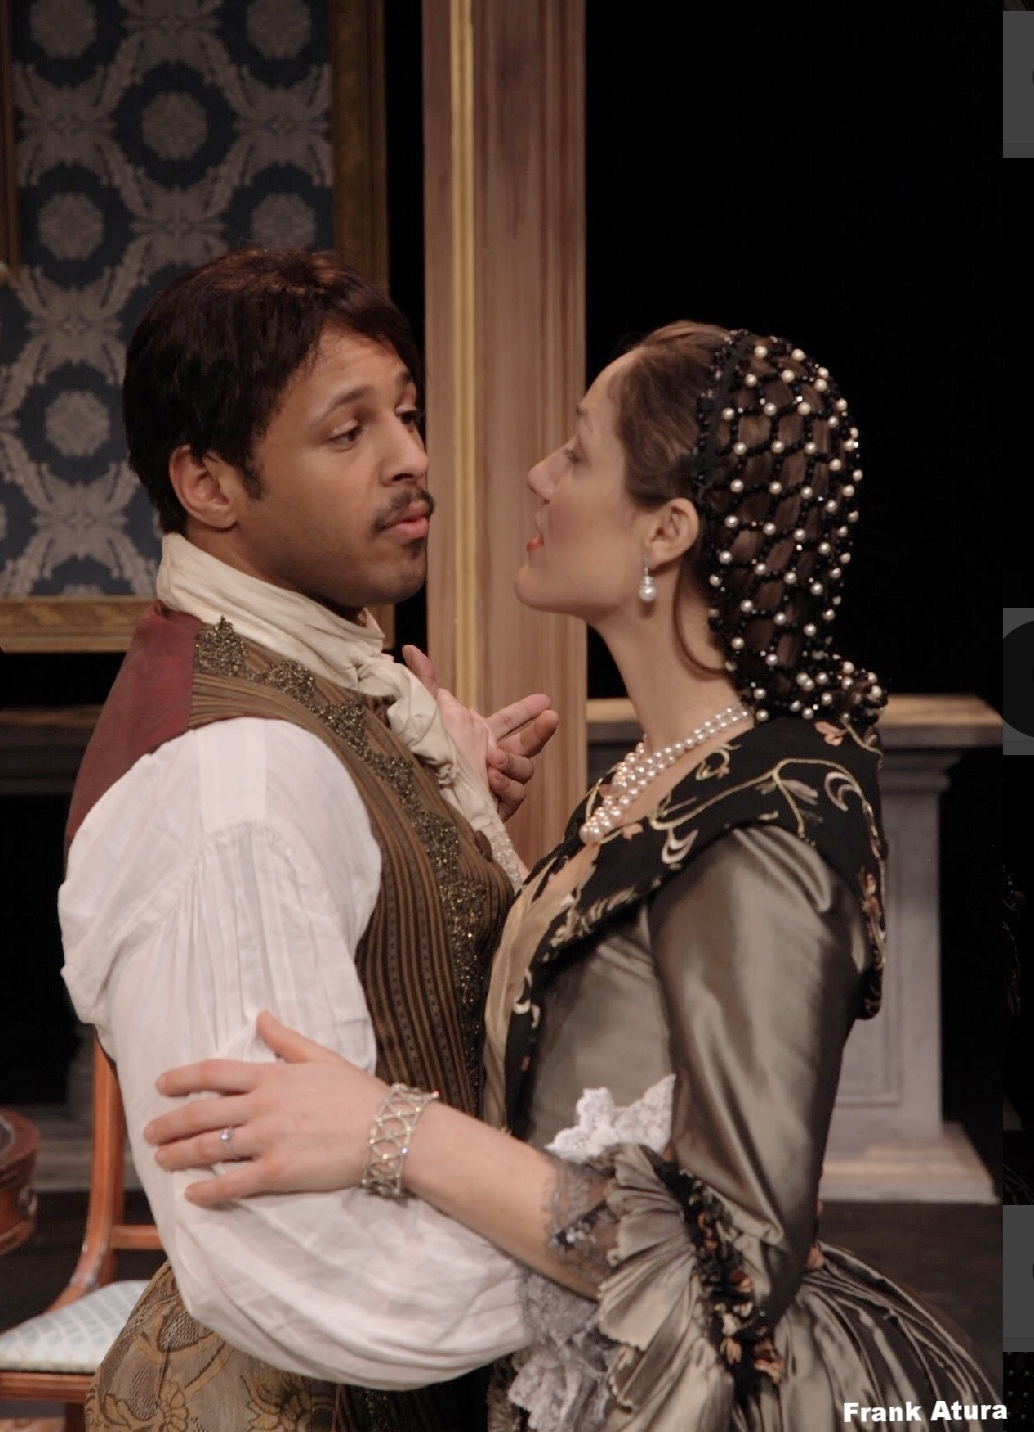 Olivia Osol as The Countess and Andy Hardaway as The Count in the Asolo Conservatory production of The Rehearsal.